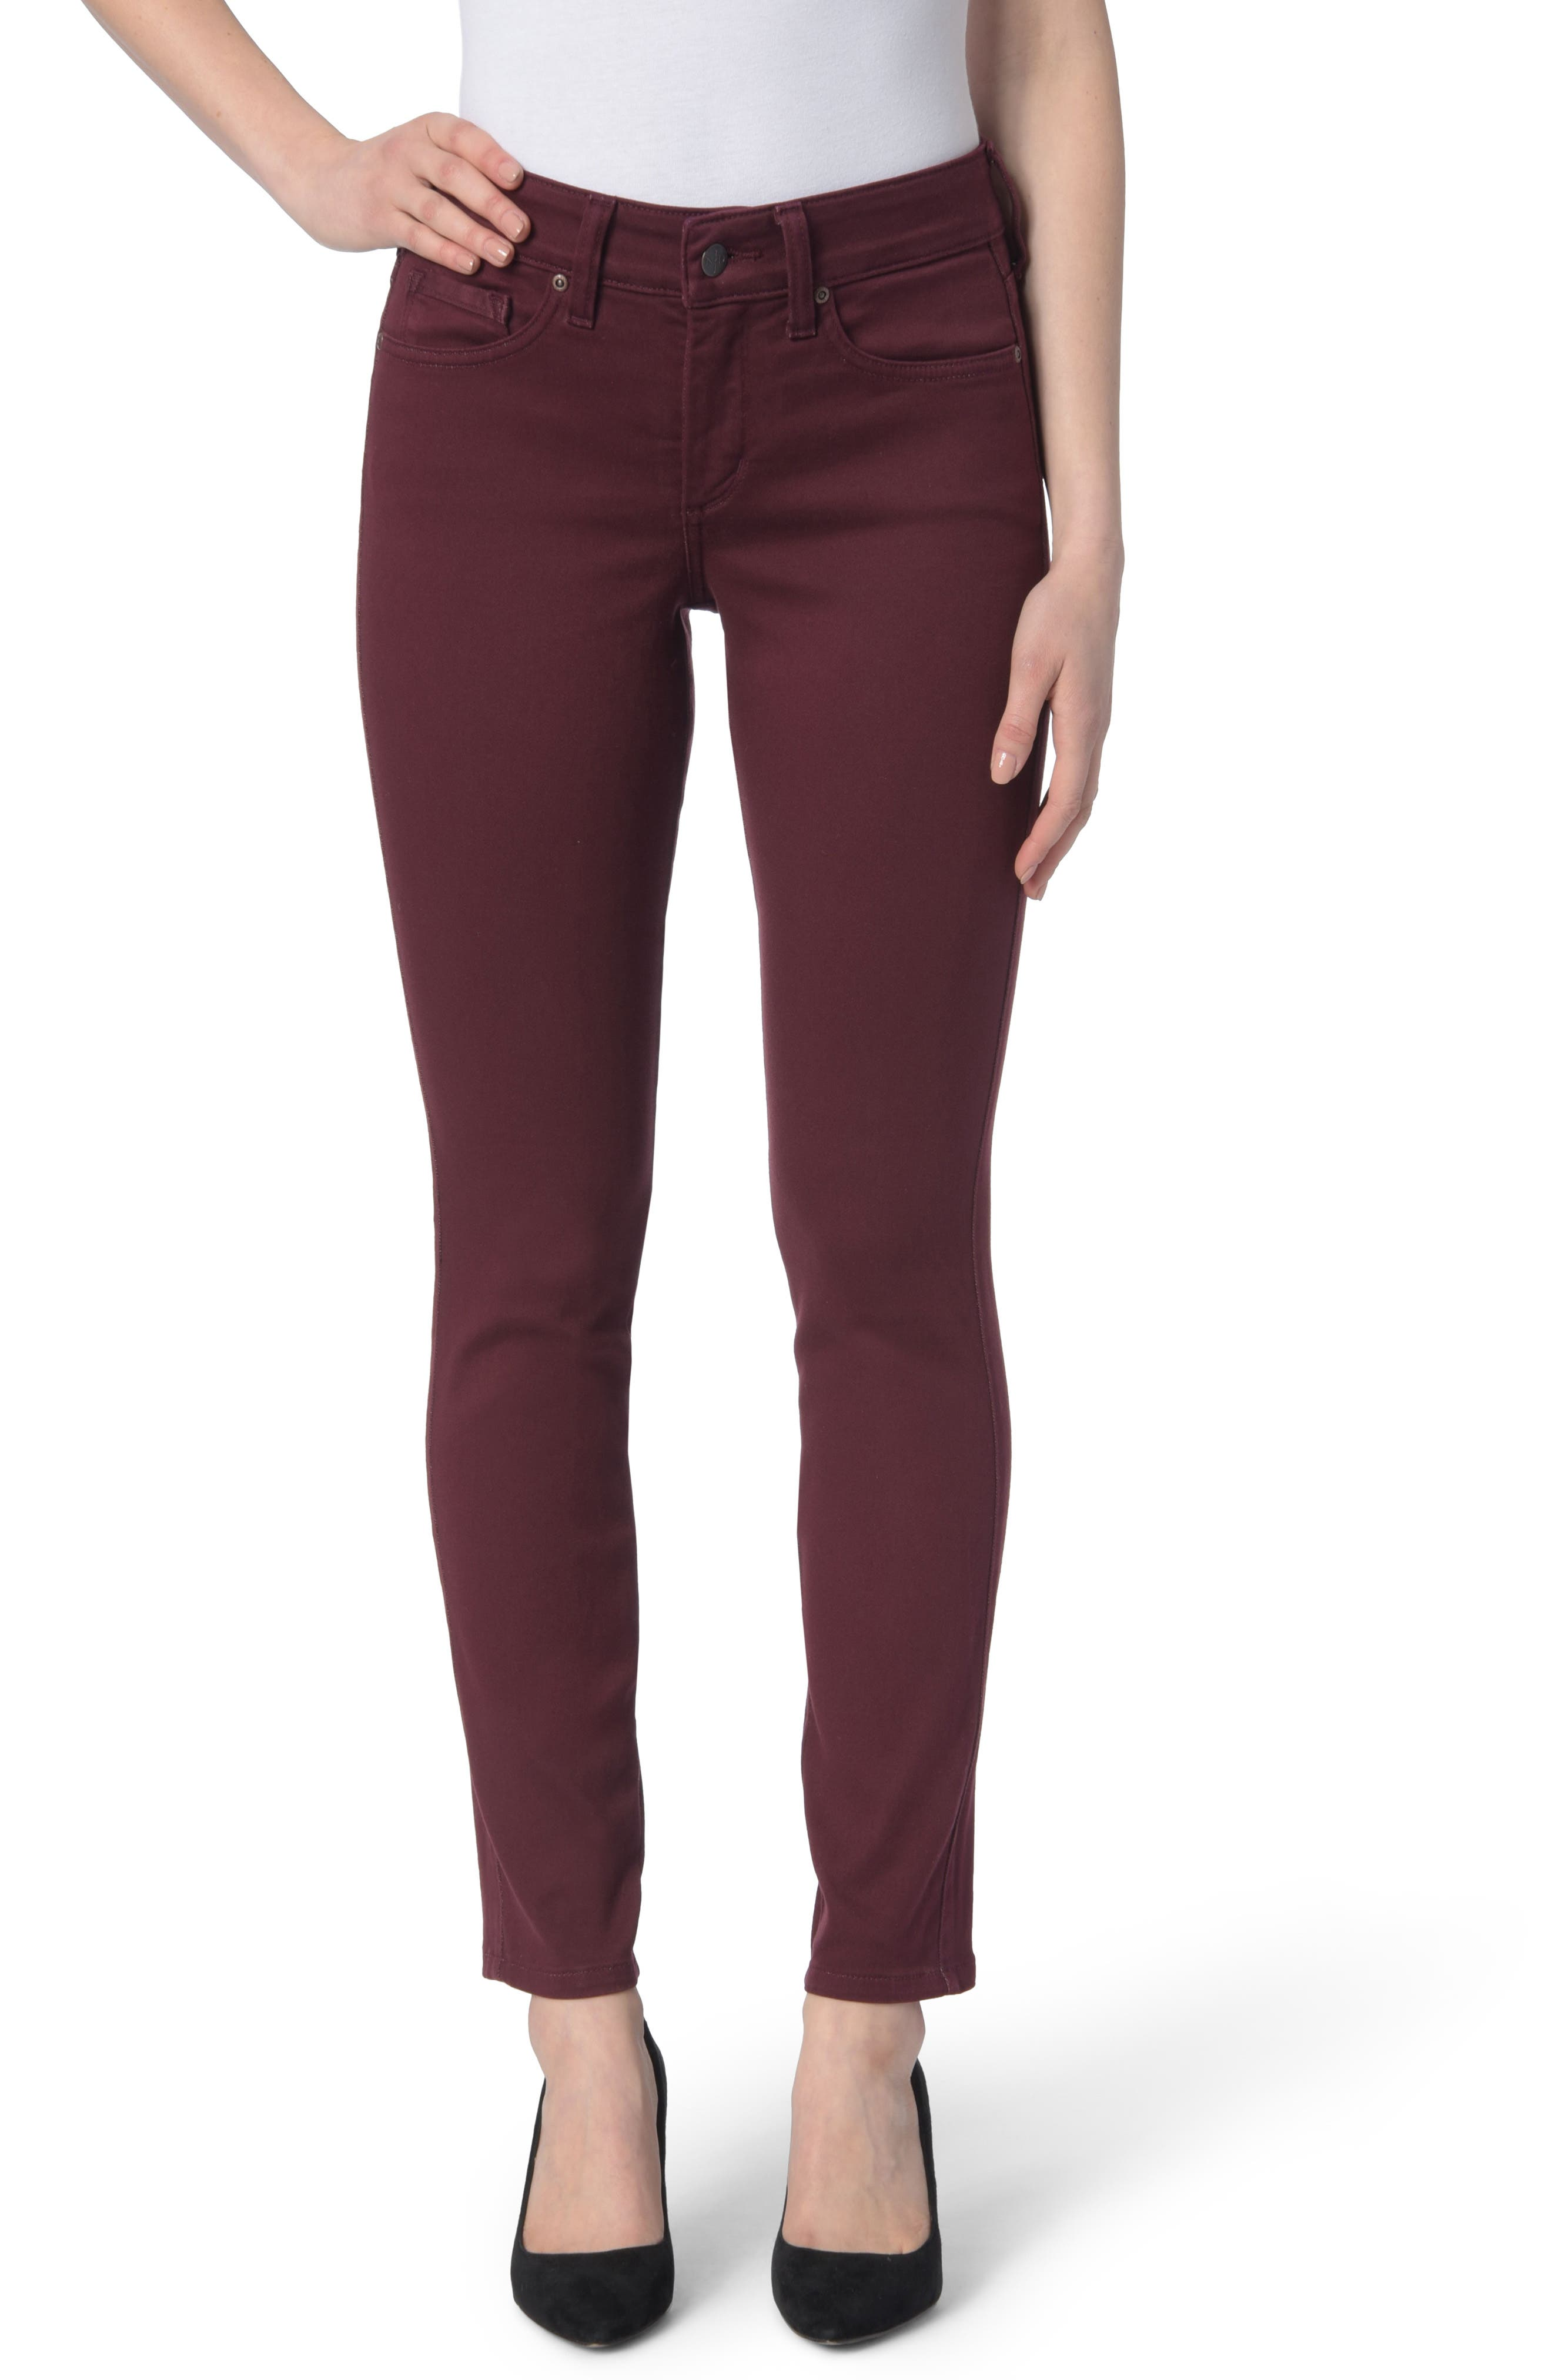 NYDJ Ami Colored Stretch Skinny Jeans (Regular & Petite)